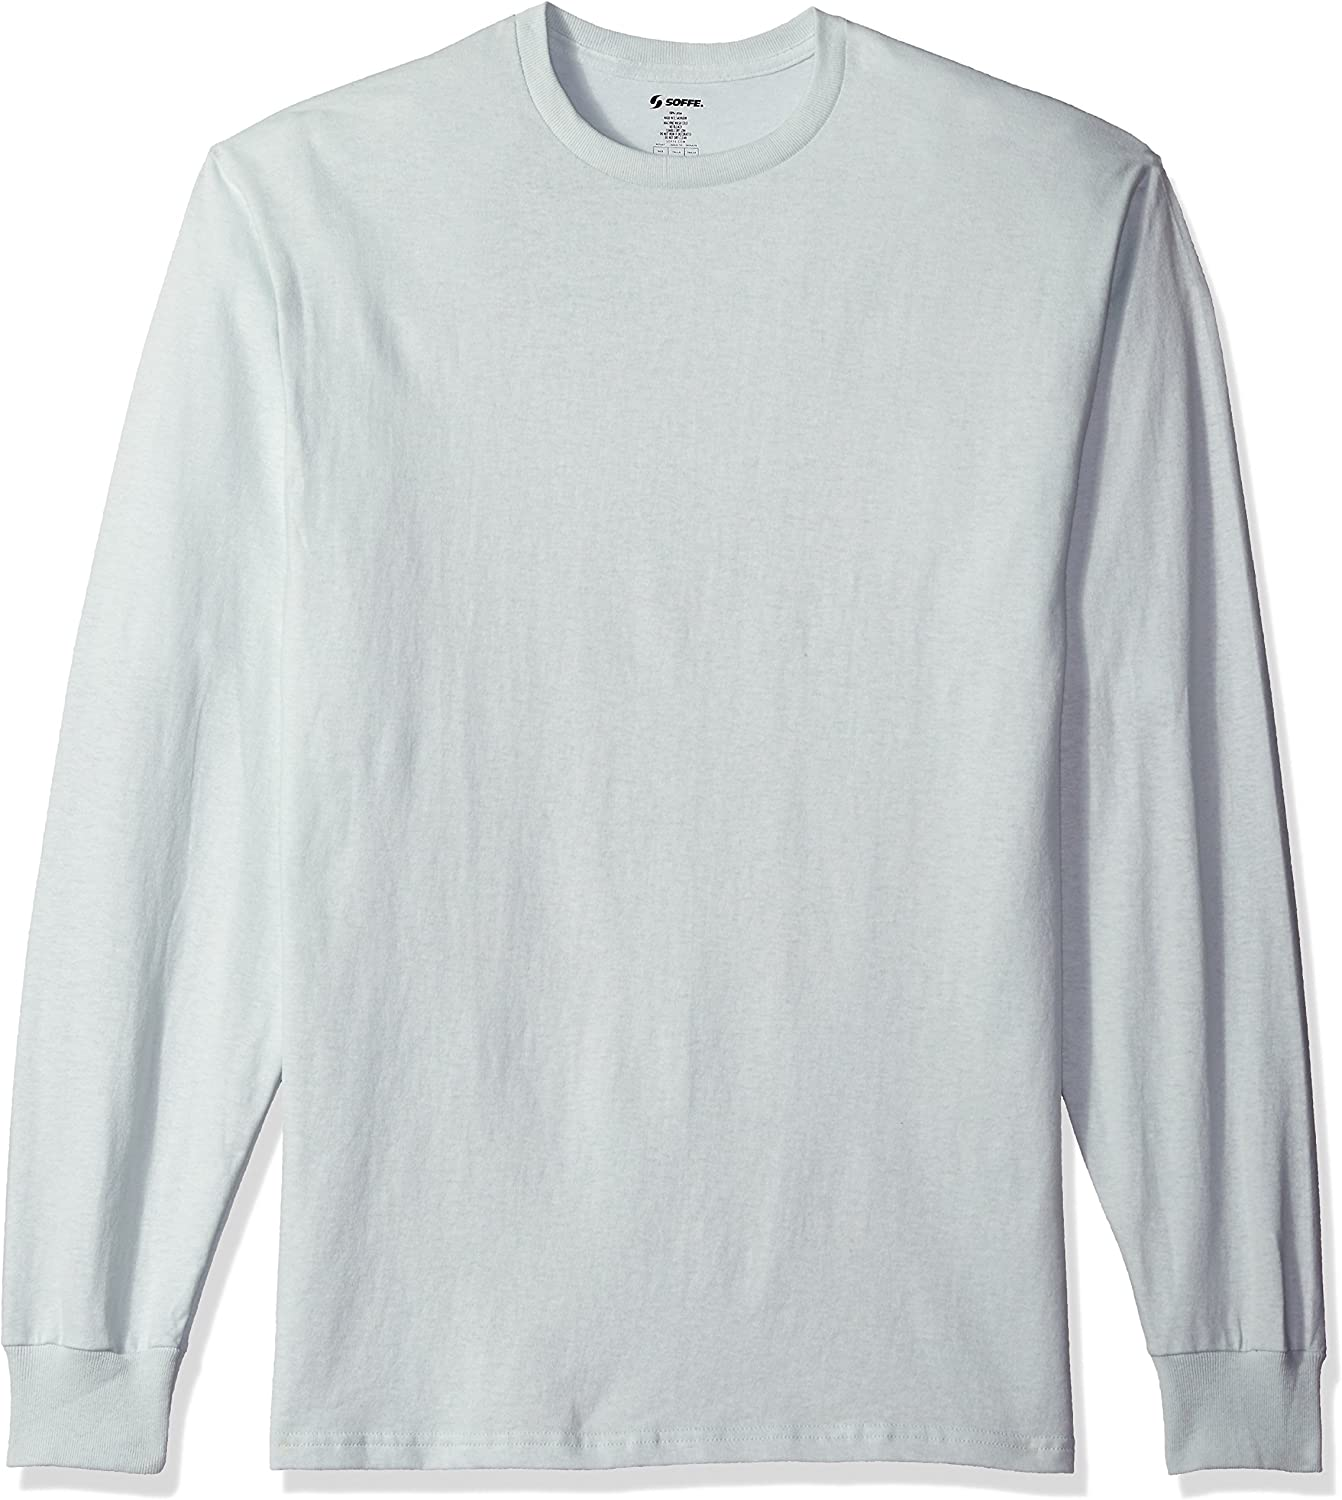 SOFFE Mens Midweight Cotton Long Sleeve Tee